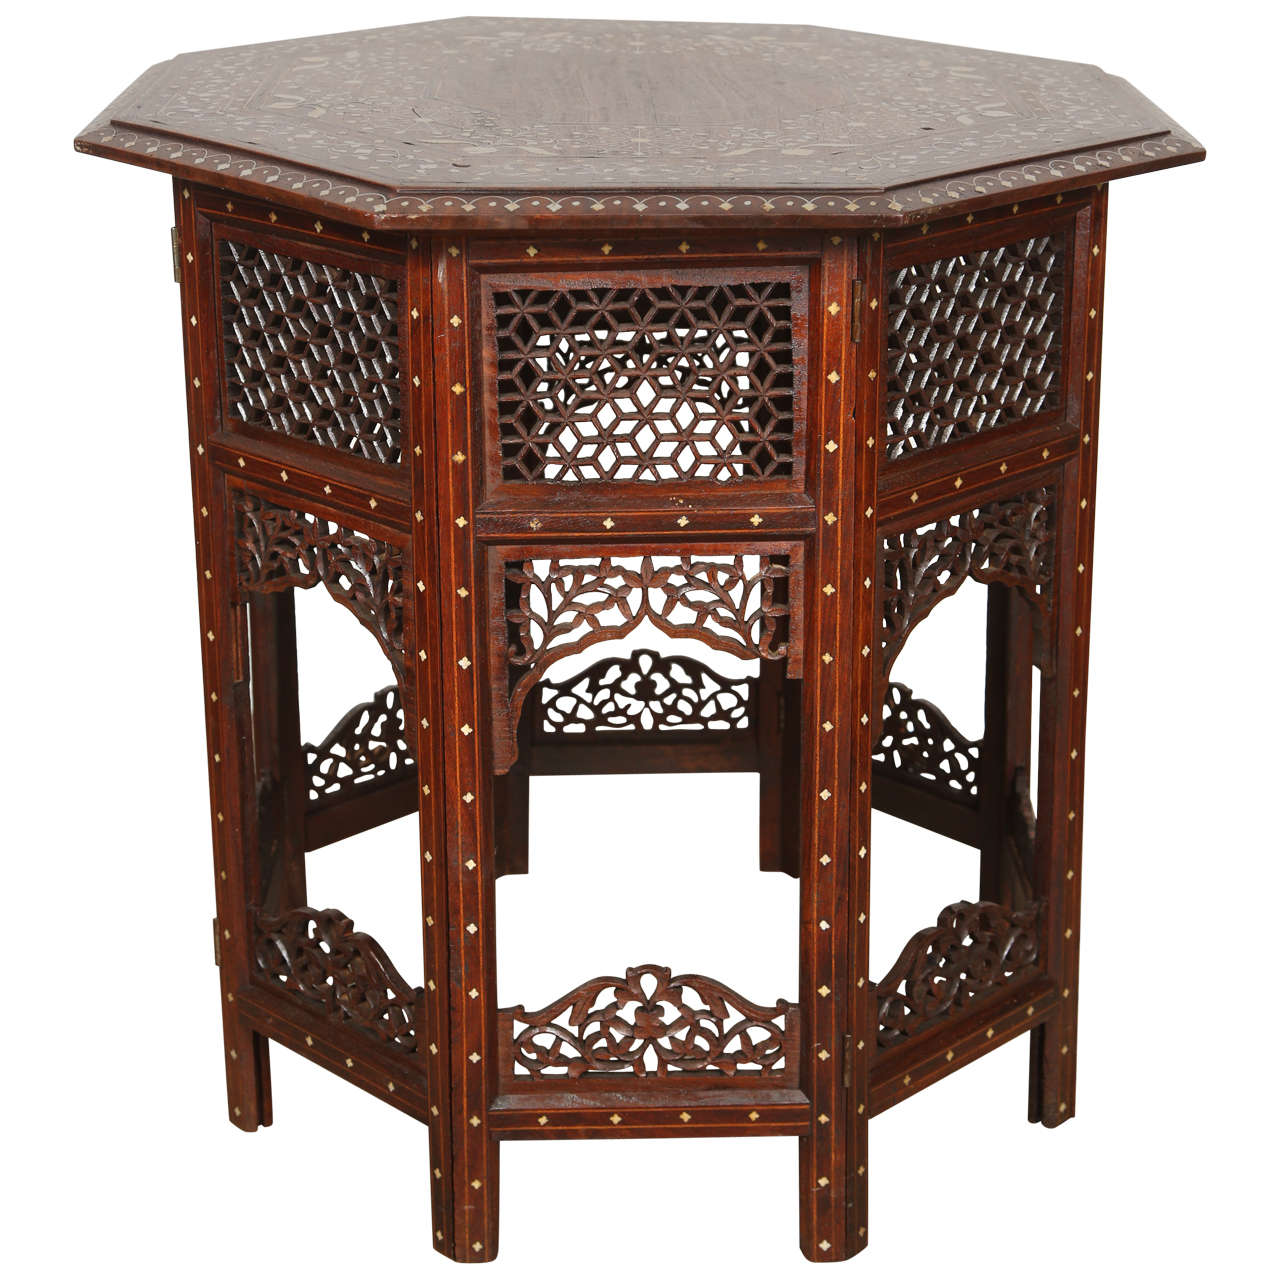 19th century anglo indian rosewood ivory inlaid side table at 1stdibs 19th century anglo indian rosewood ivory inlaid side table 1 geotapseo Choice Image